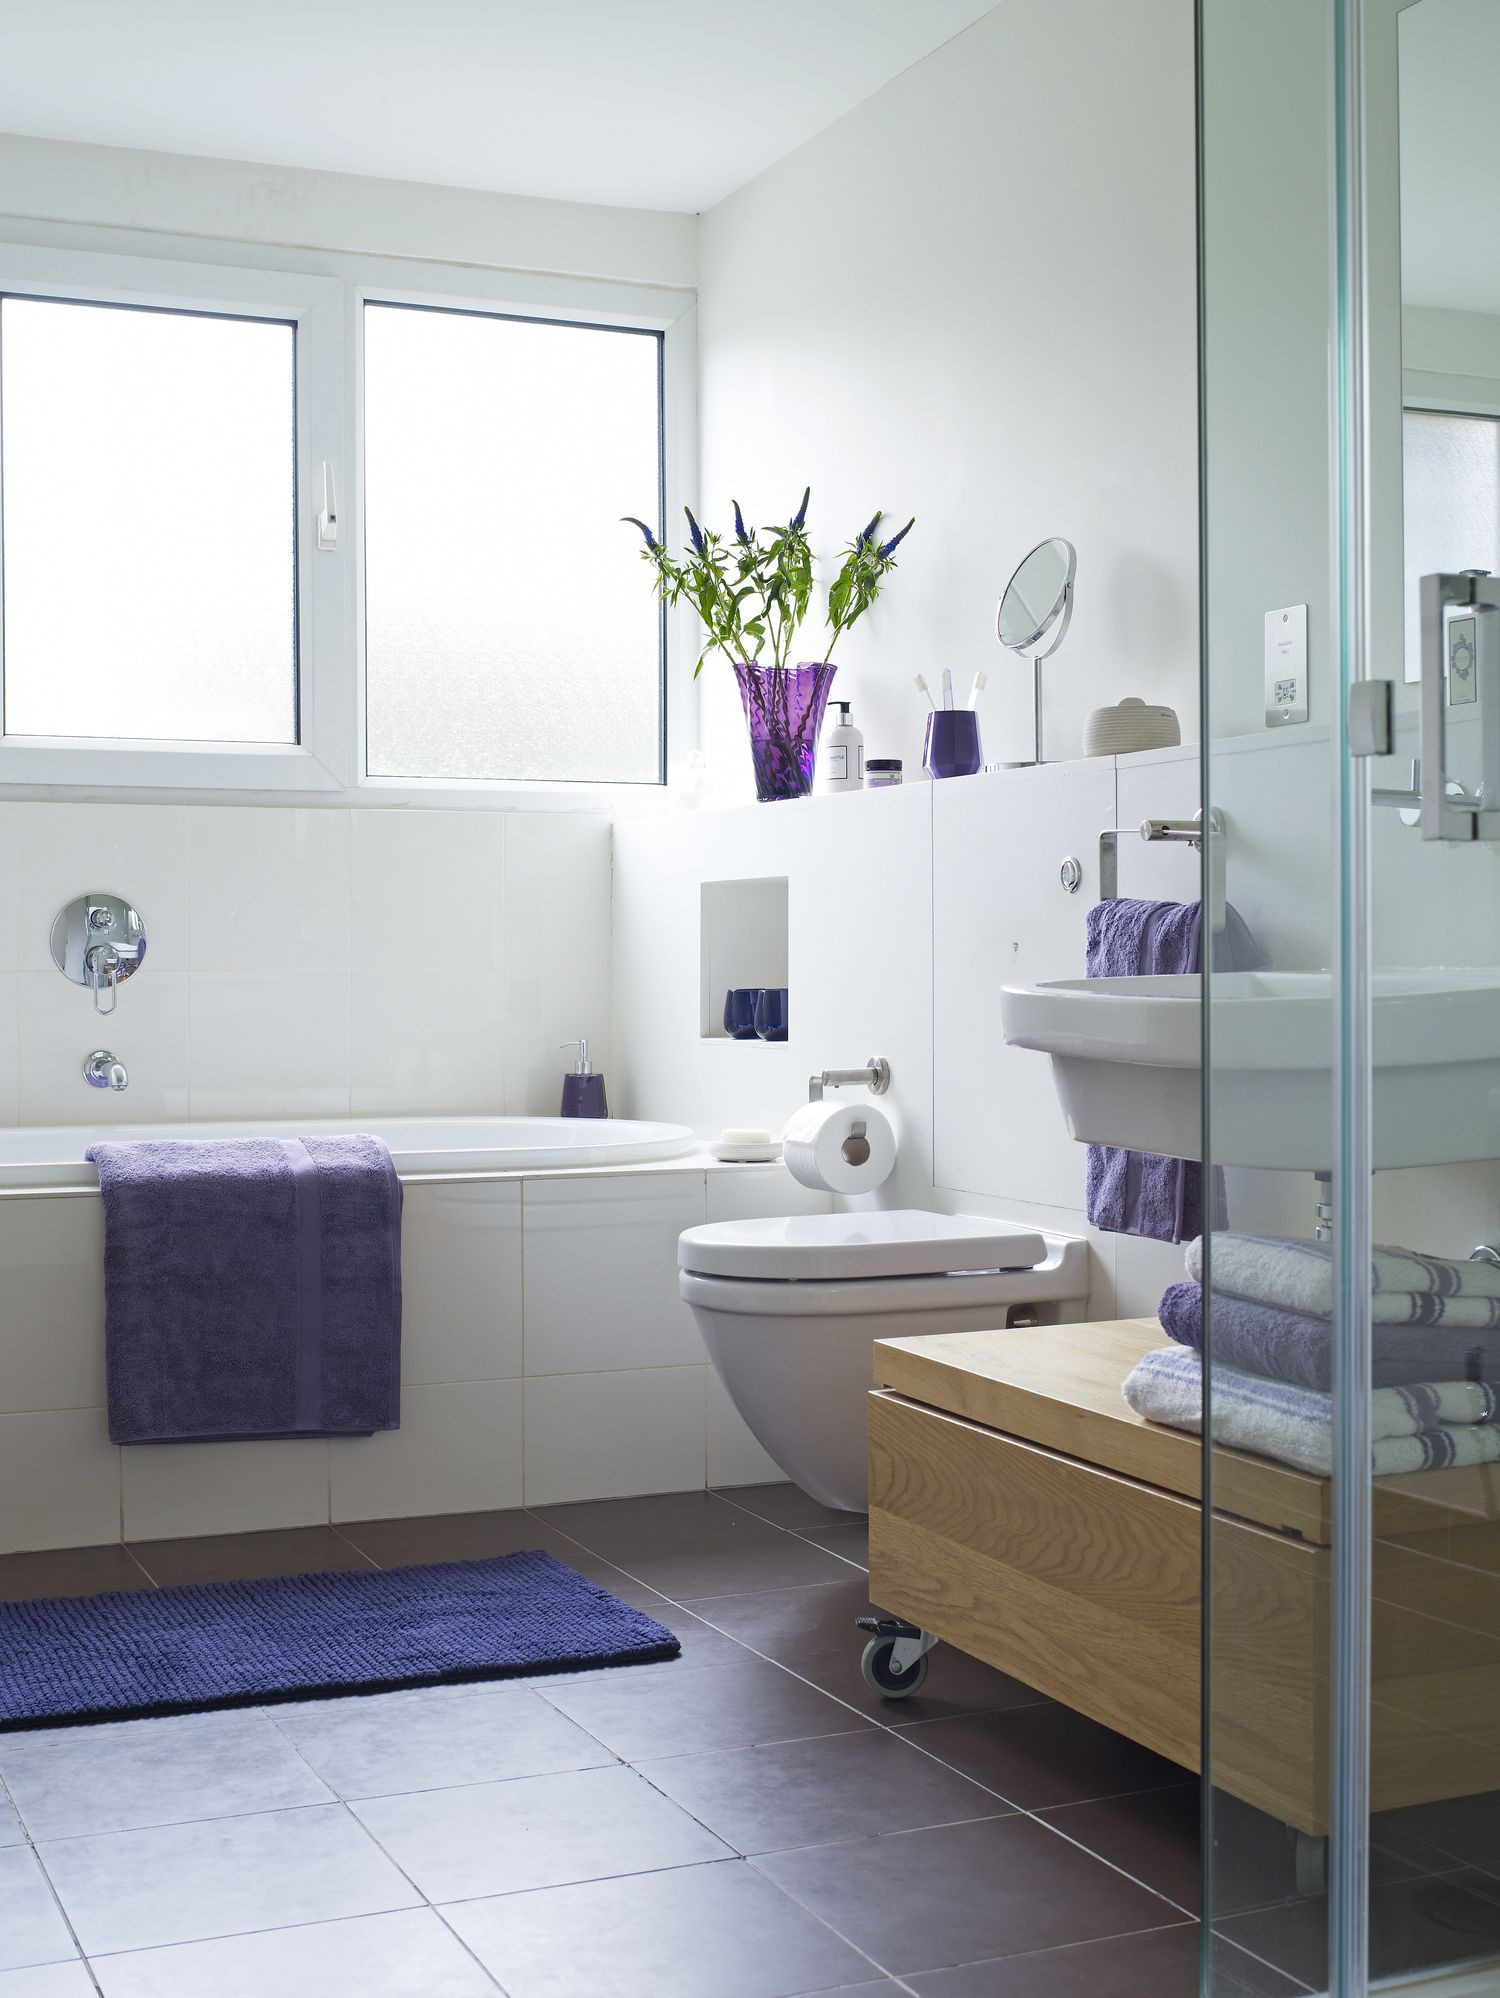 Best ideas about Small Bathroom Plans . Save or Pin 25 Killer Small Bathroom Design Tips Now.